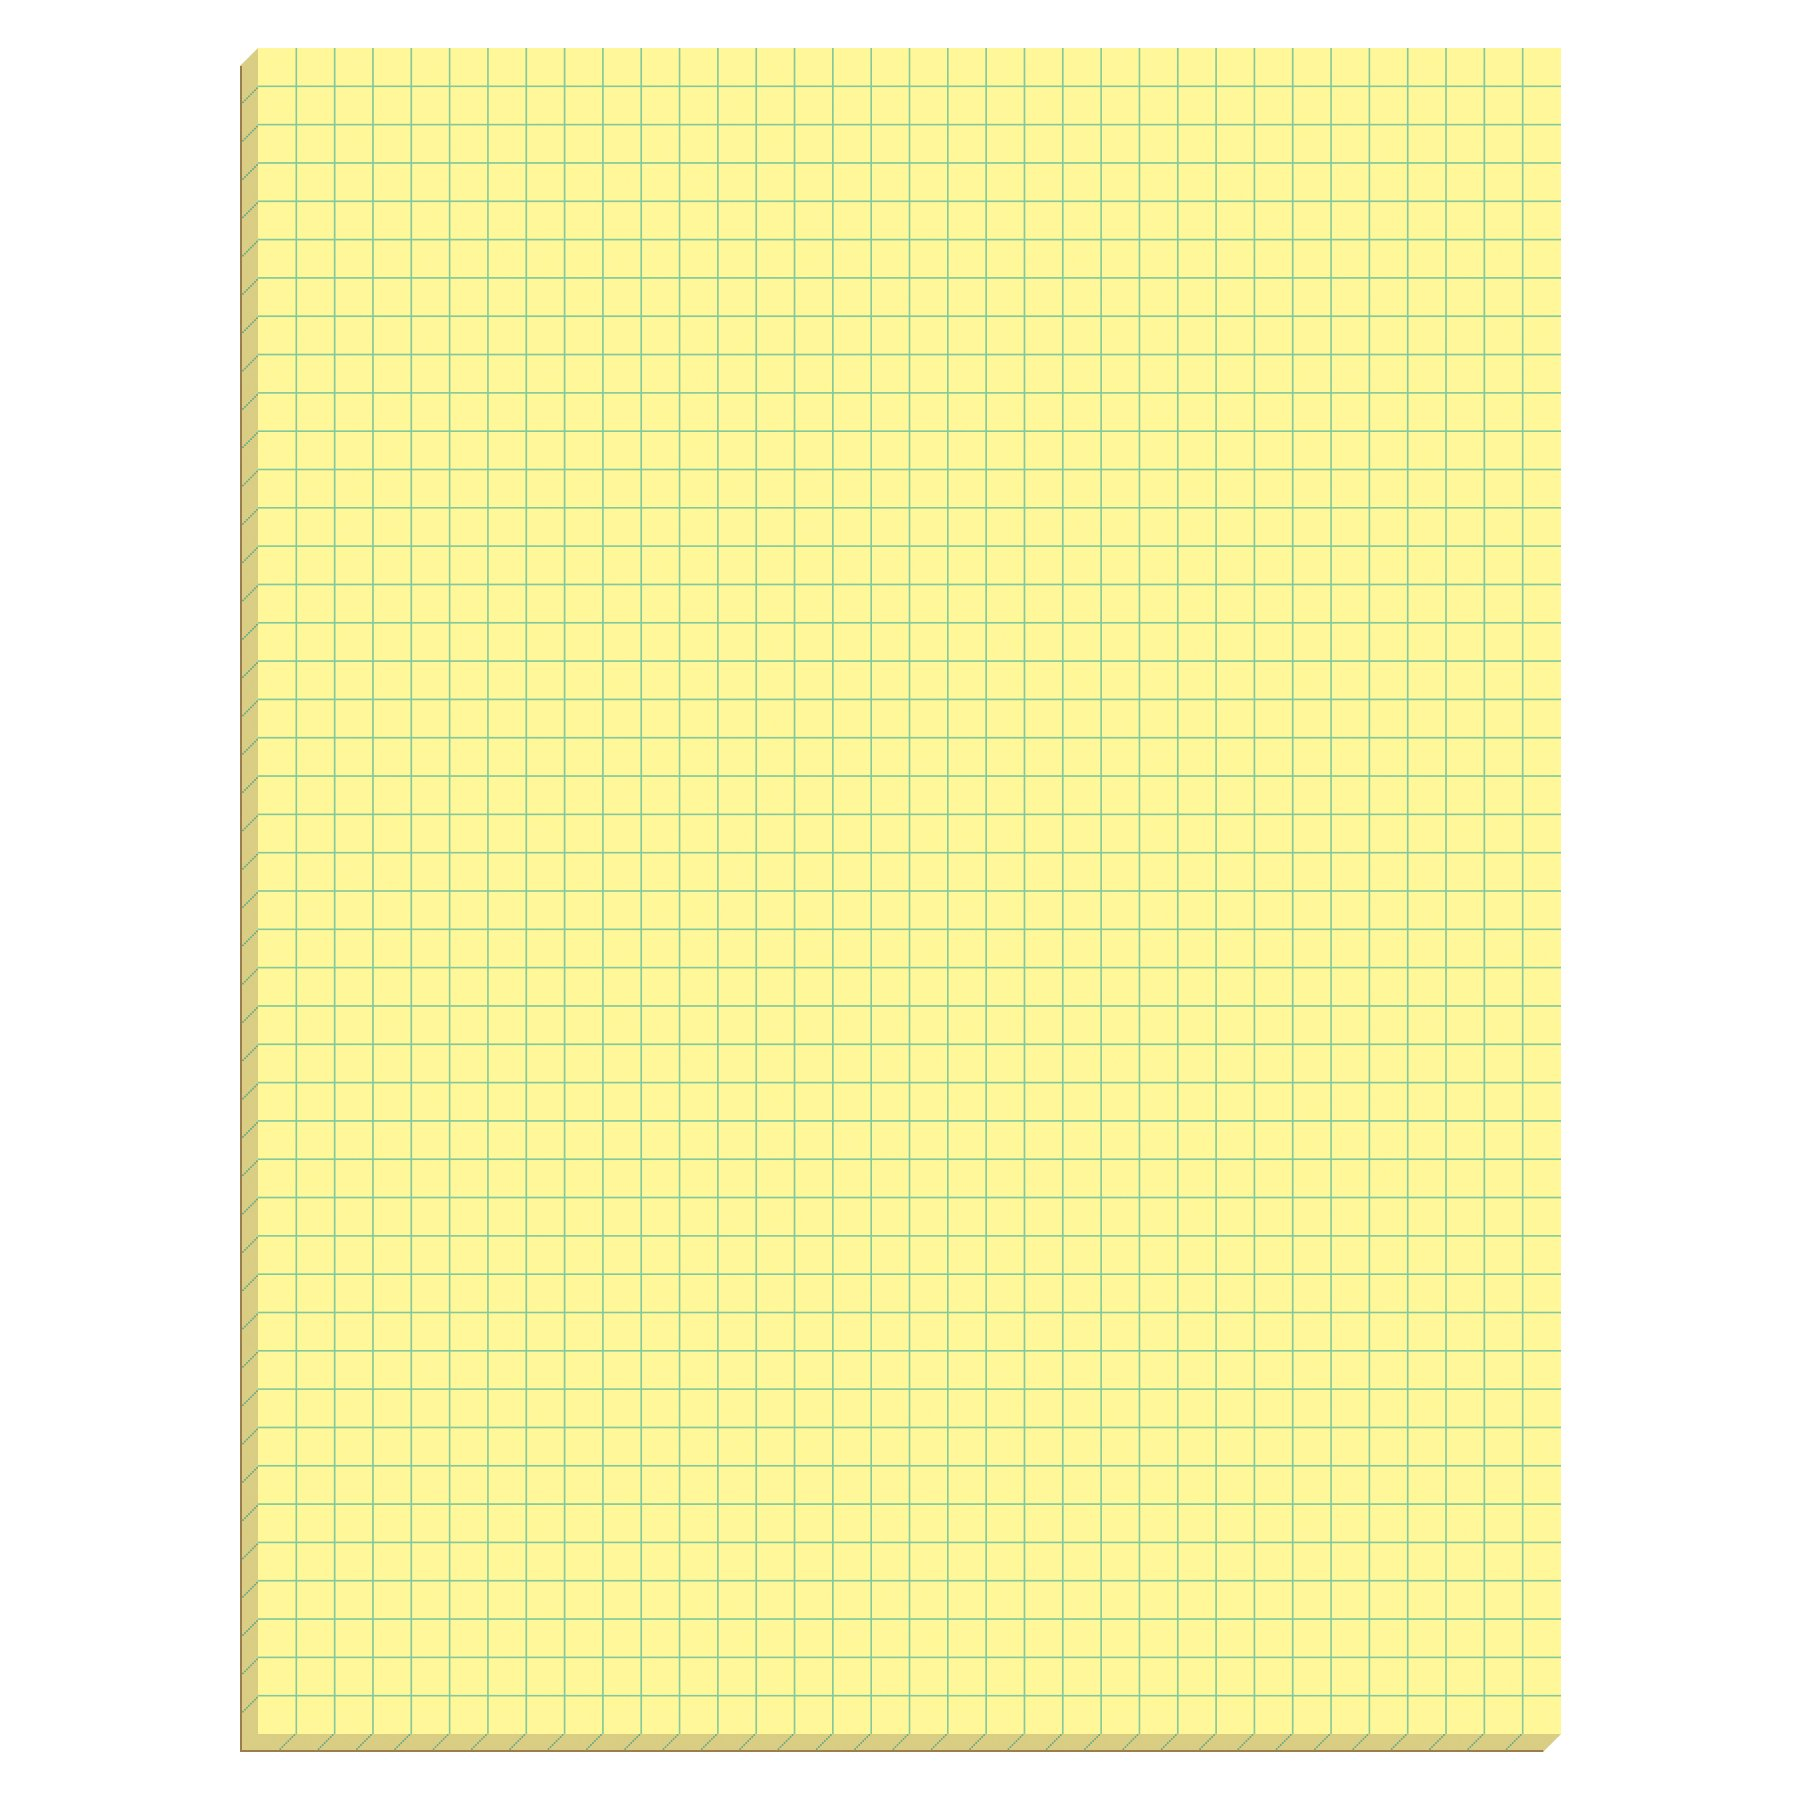 TOPS Quadrille Pad, Gum-Top, 8-1/2 x 11 Inches, Quad Rule (4 x 4), Canary Paper, 50 Sheets per Pad, 12 Pads per Pack (3313) by TOPS